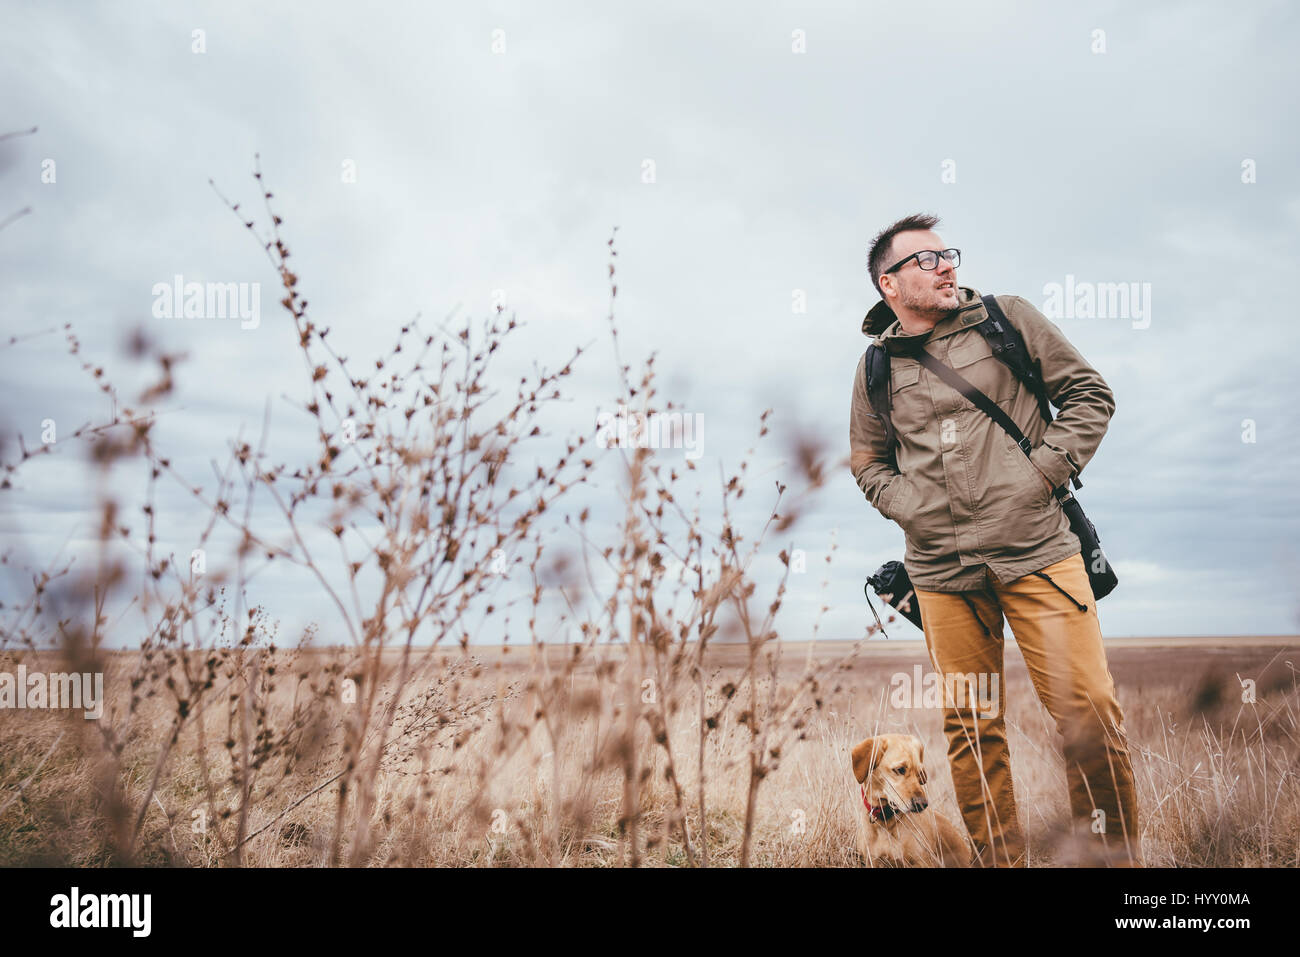 Hiker and dog walking in high grass on a cloudy day Stock Photo